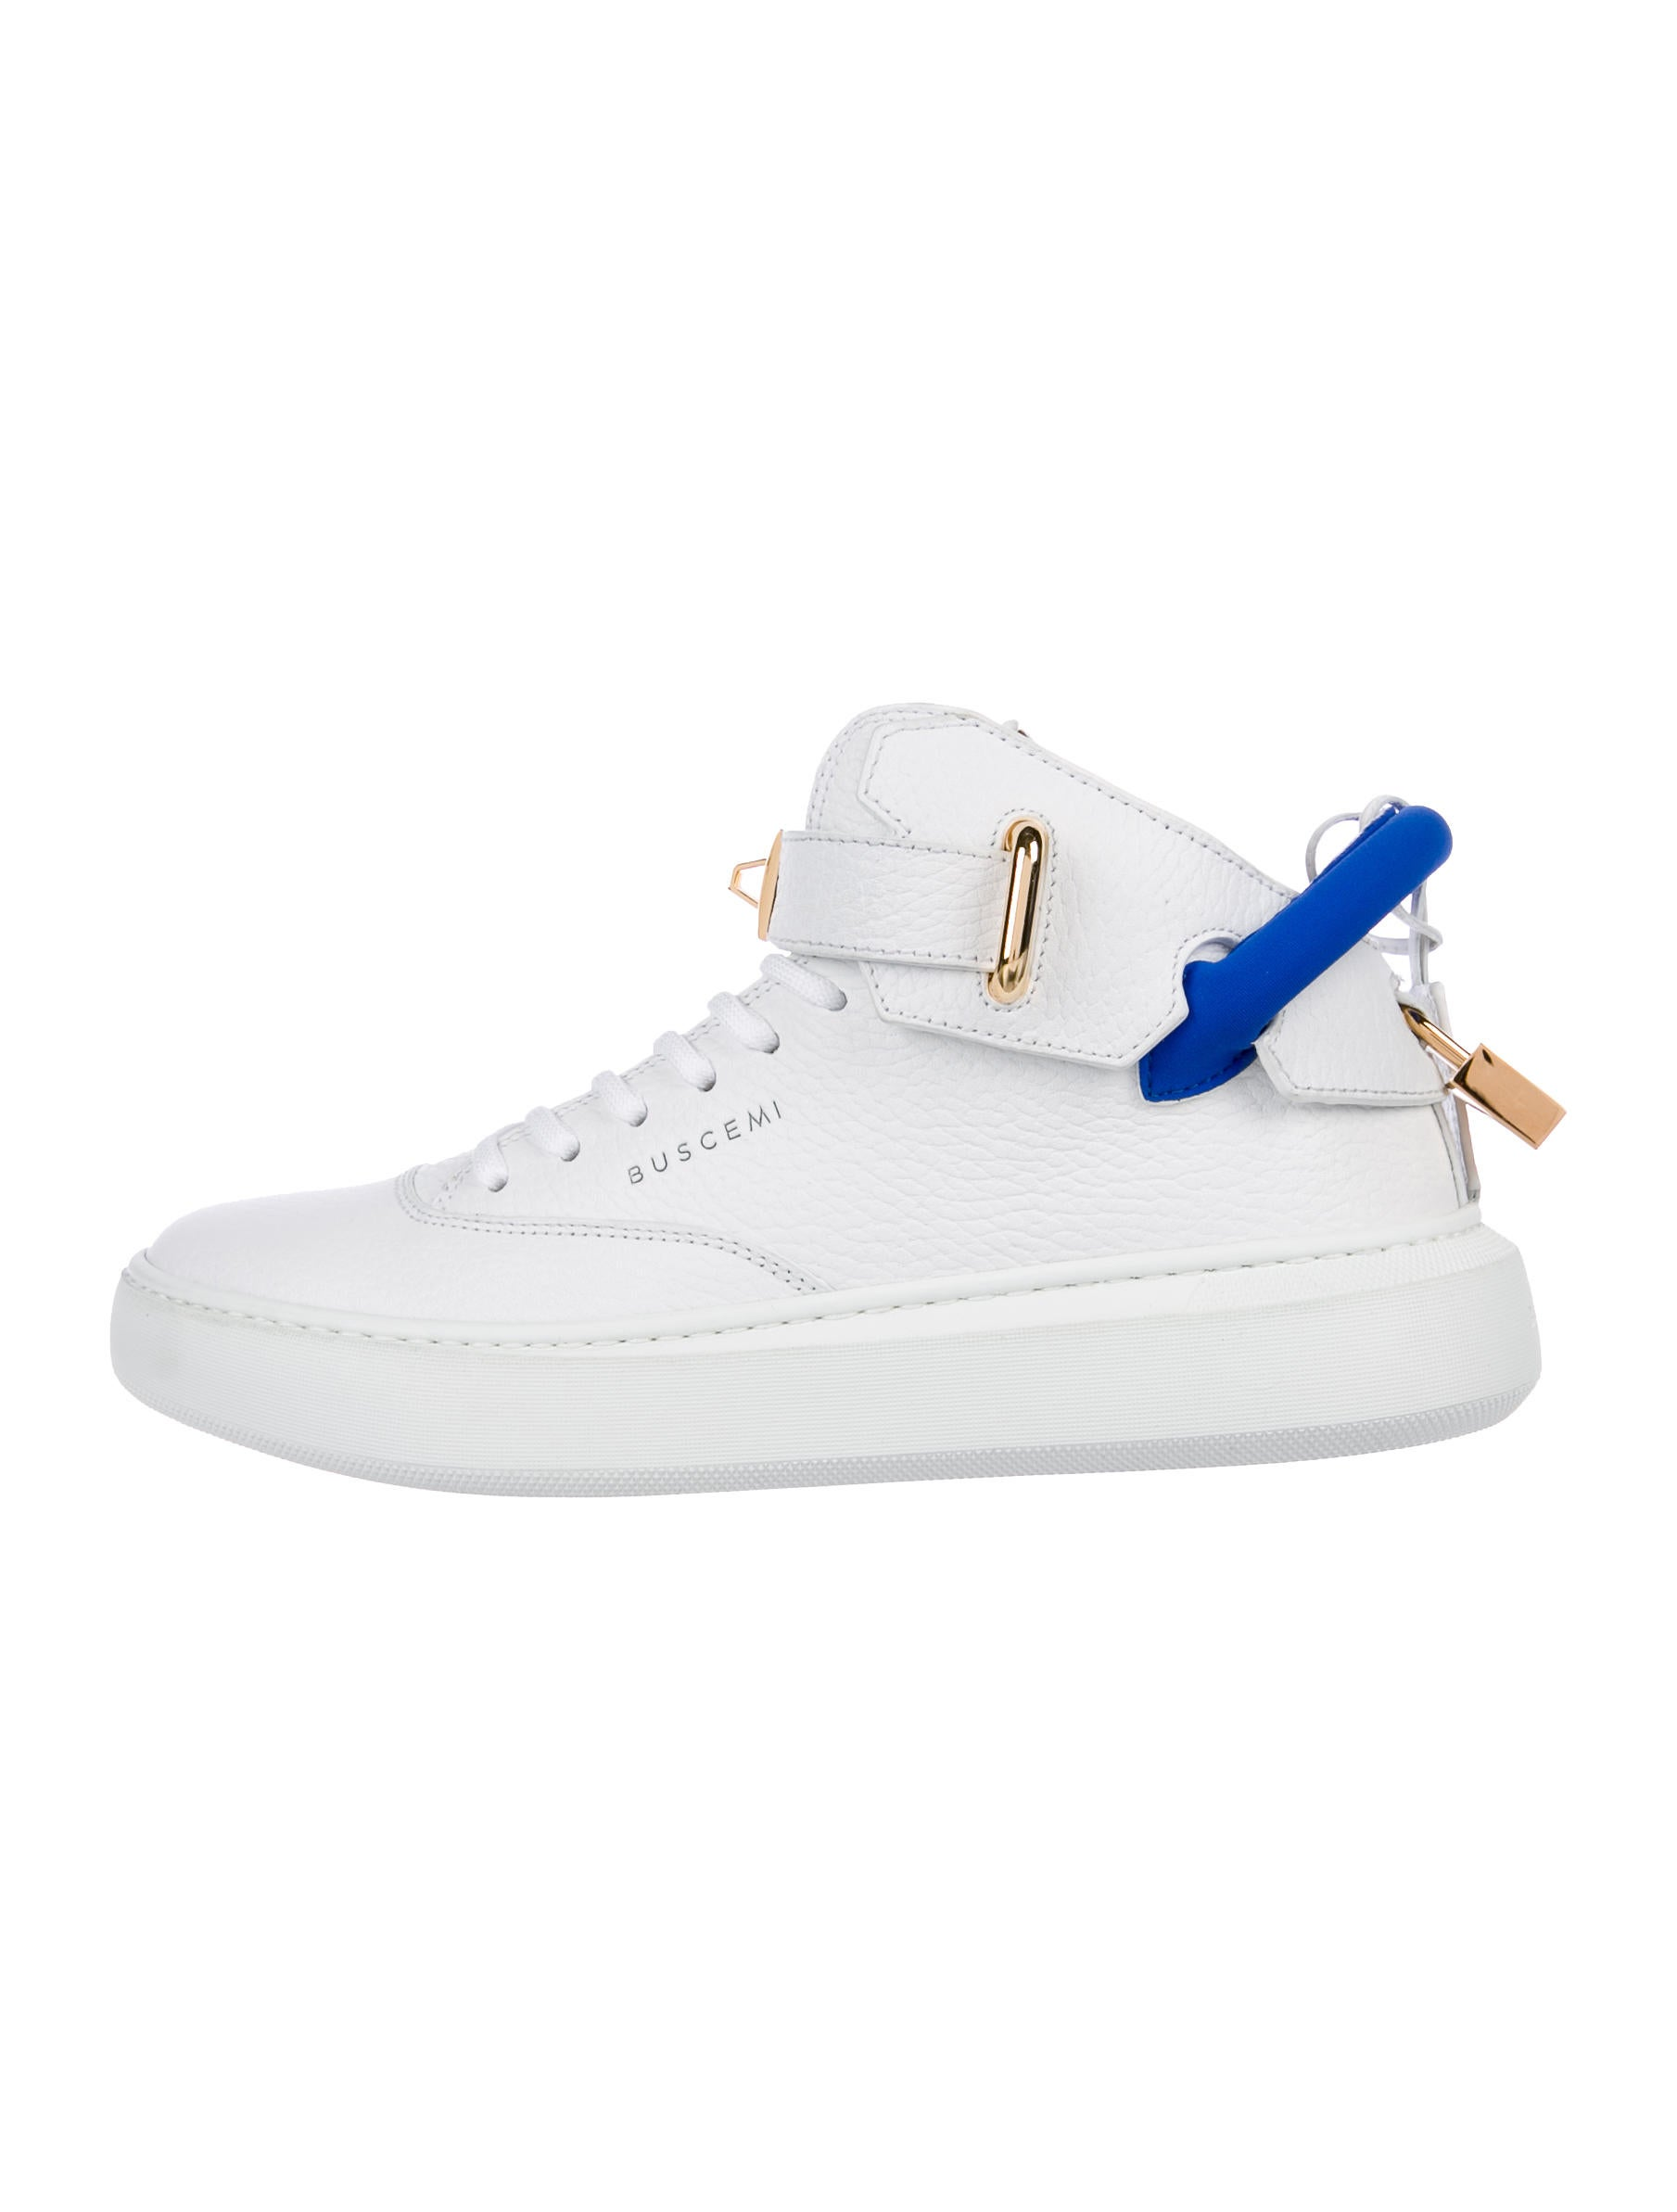 Buscemi High-Top Padlock Sneakers w/ Tags cheap manchester great sale VsHTge